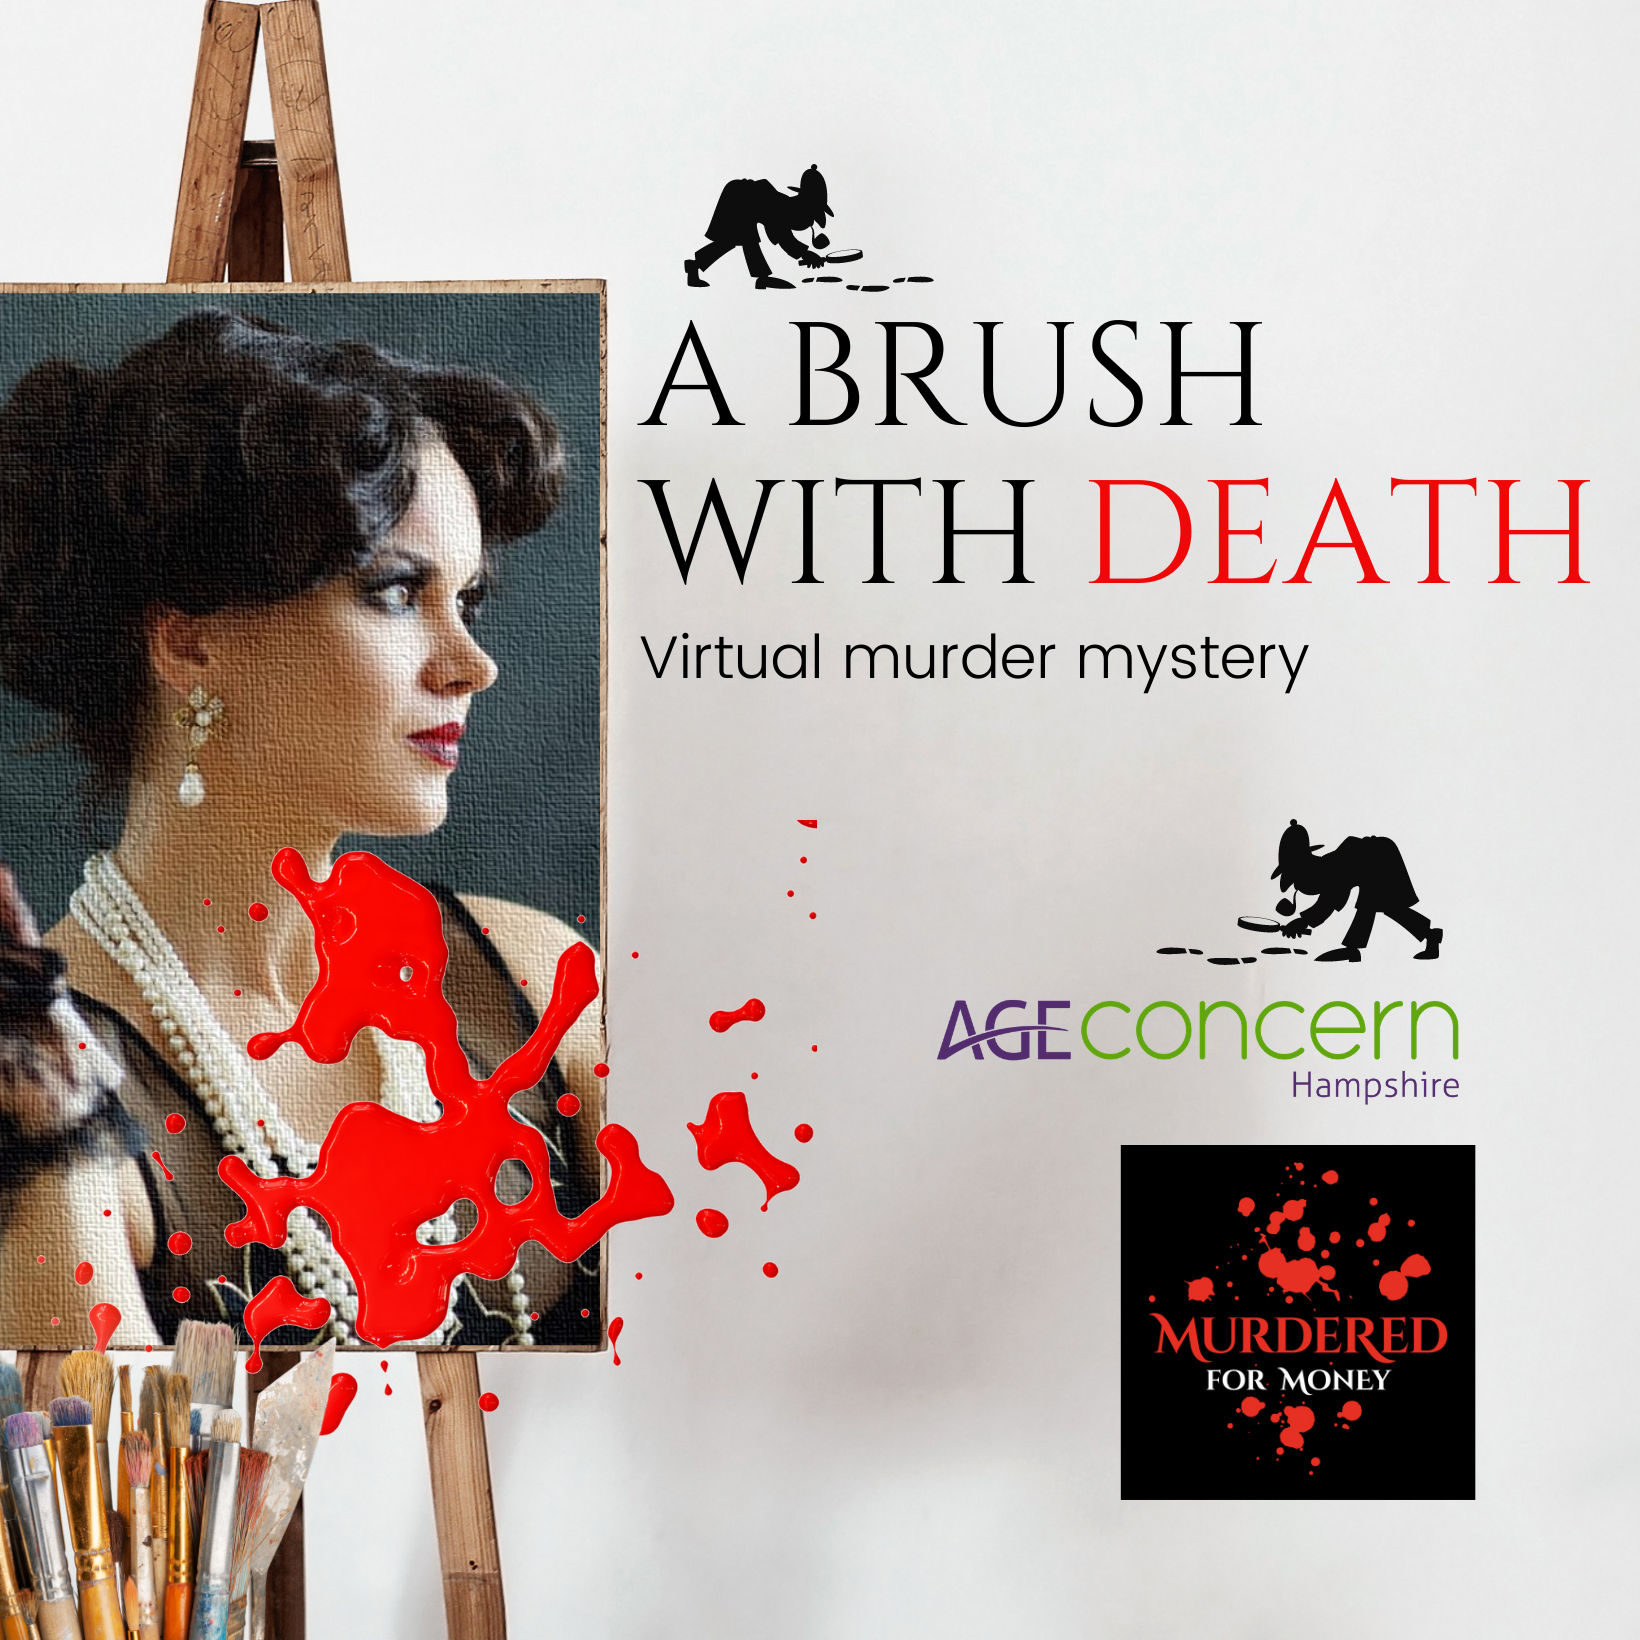 A Brush with Death - A Virtual Murder Mystery Challenge